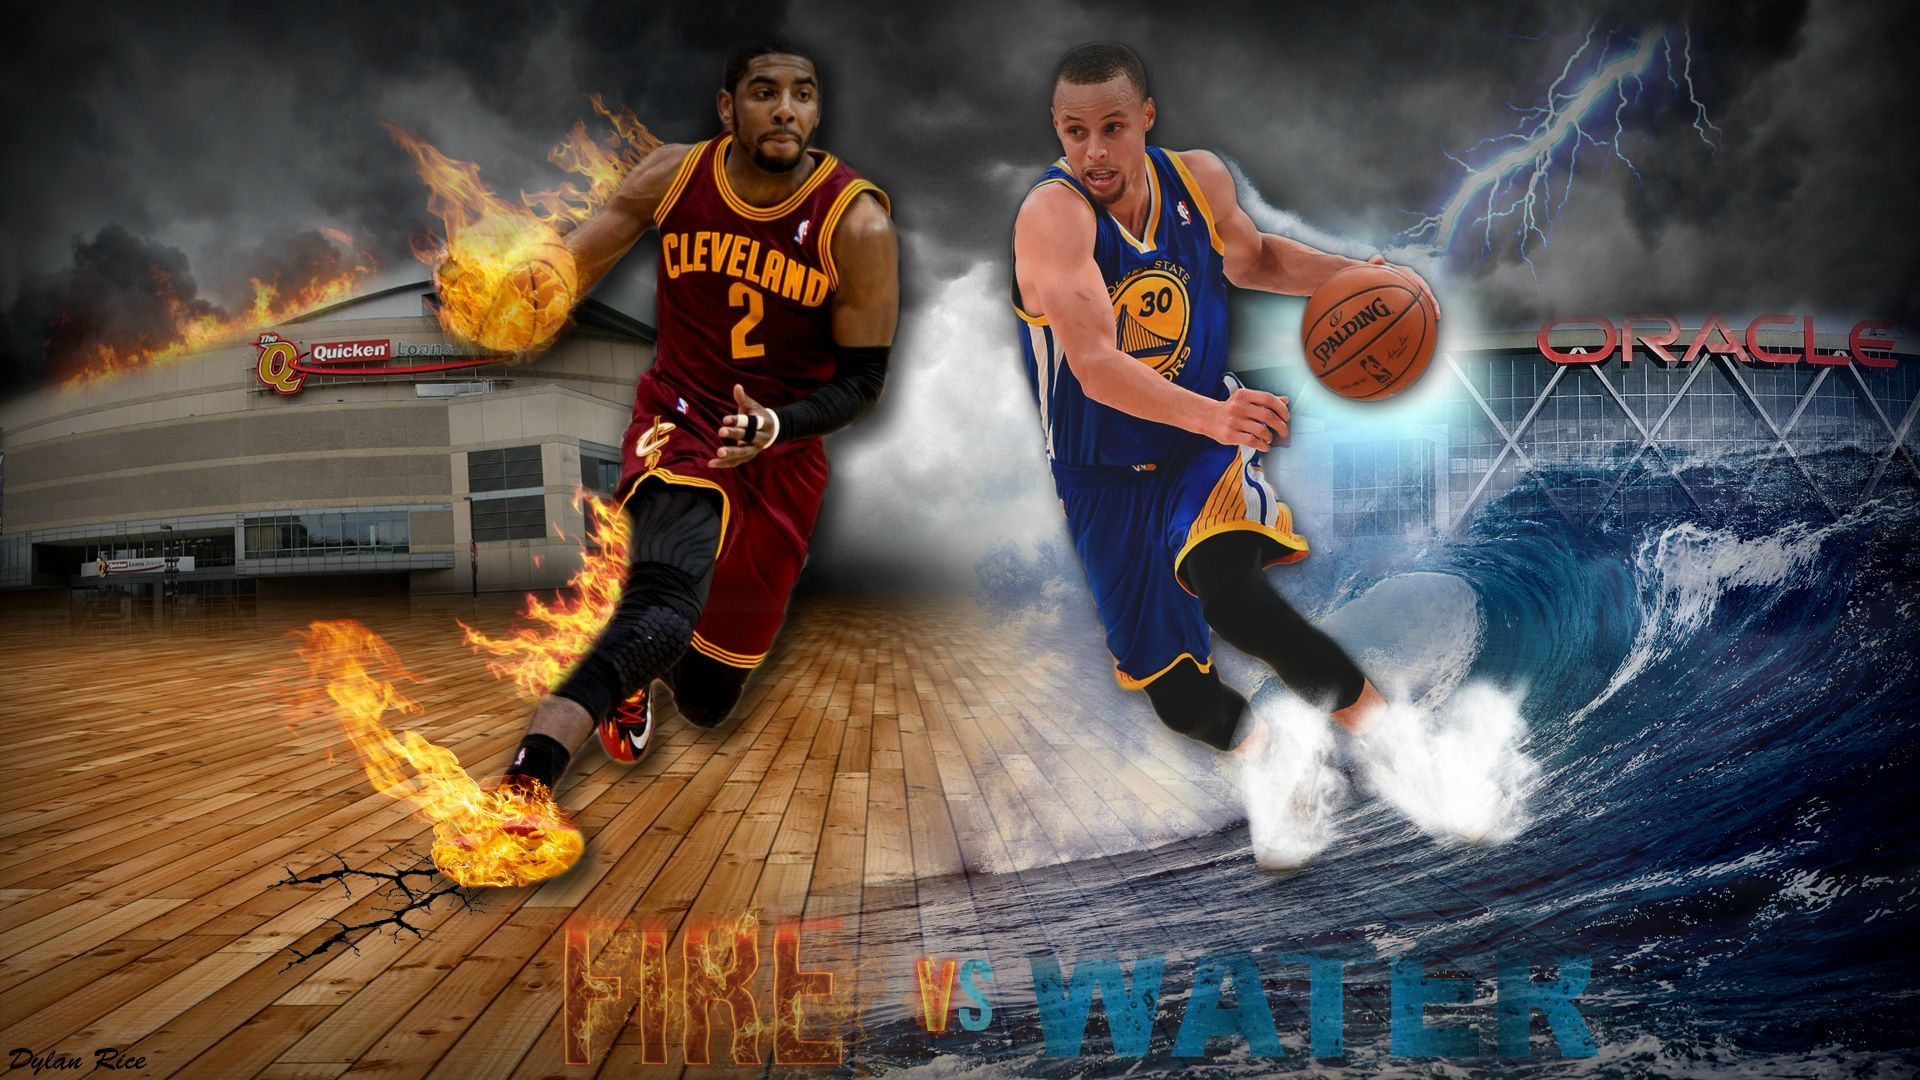 Fire Vs Water Stephen Curry Wallpaper HD #4697 Wallpaper